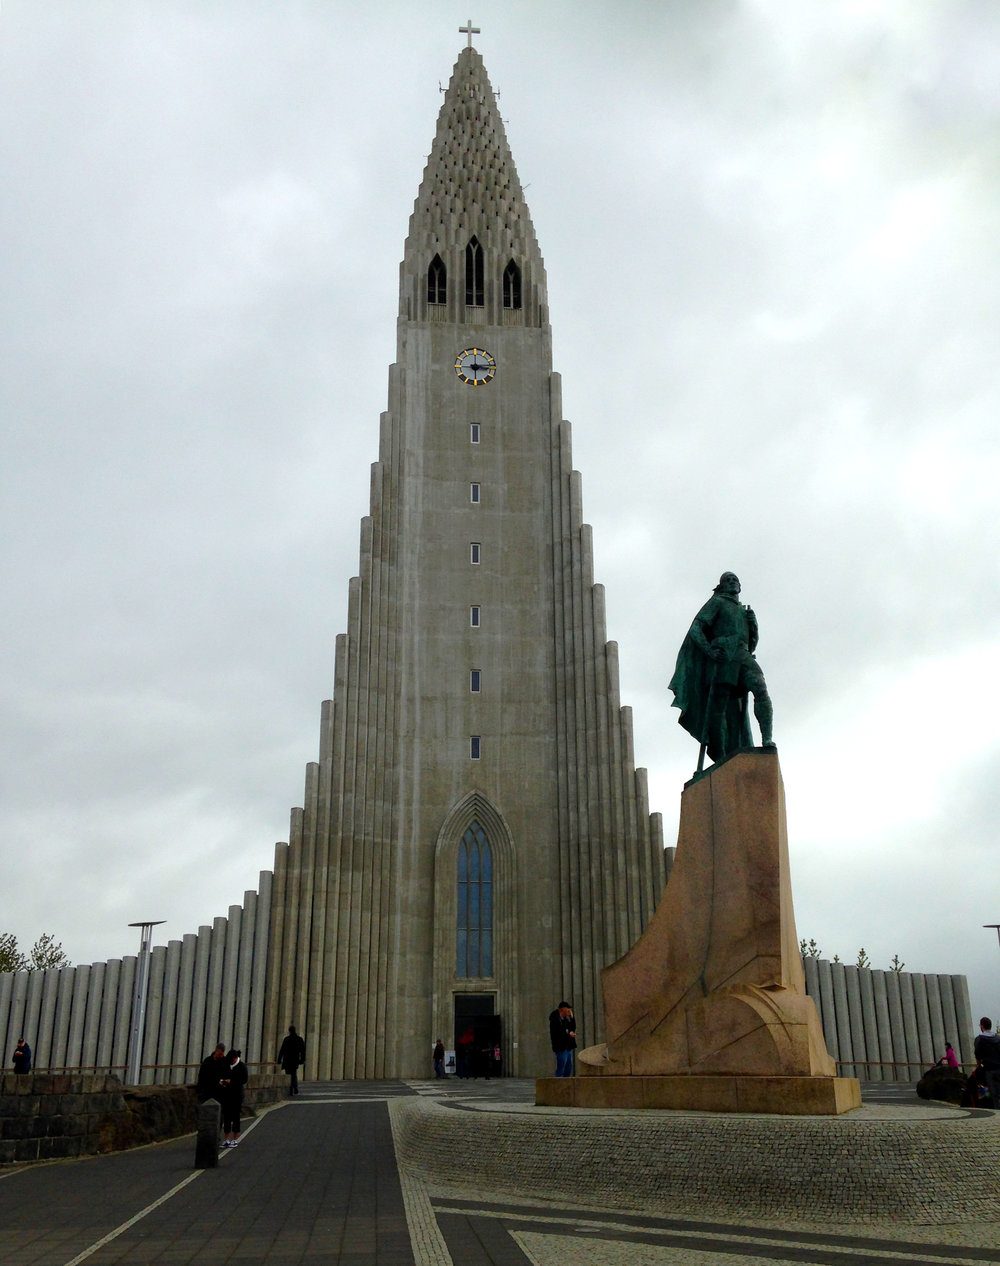 Hallgrimskirkja is massive church that you can take an elevator to the top to see an amazing view of the colorful buildings of Reykjavík.